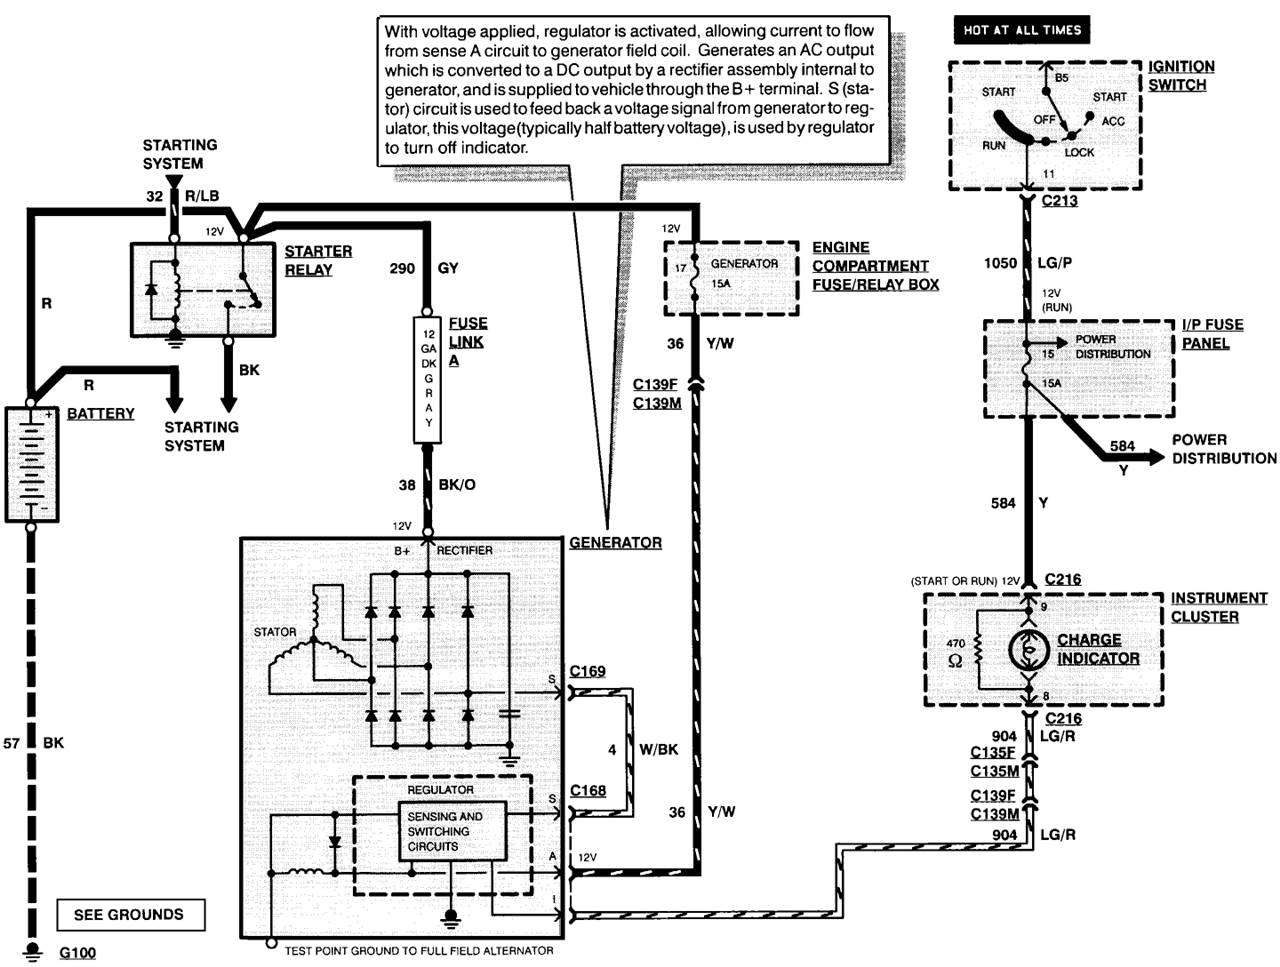 Older Alternator Wiring Diagram With Internal Regulator